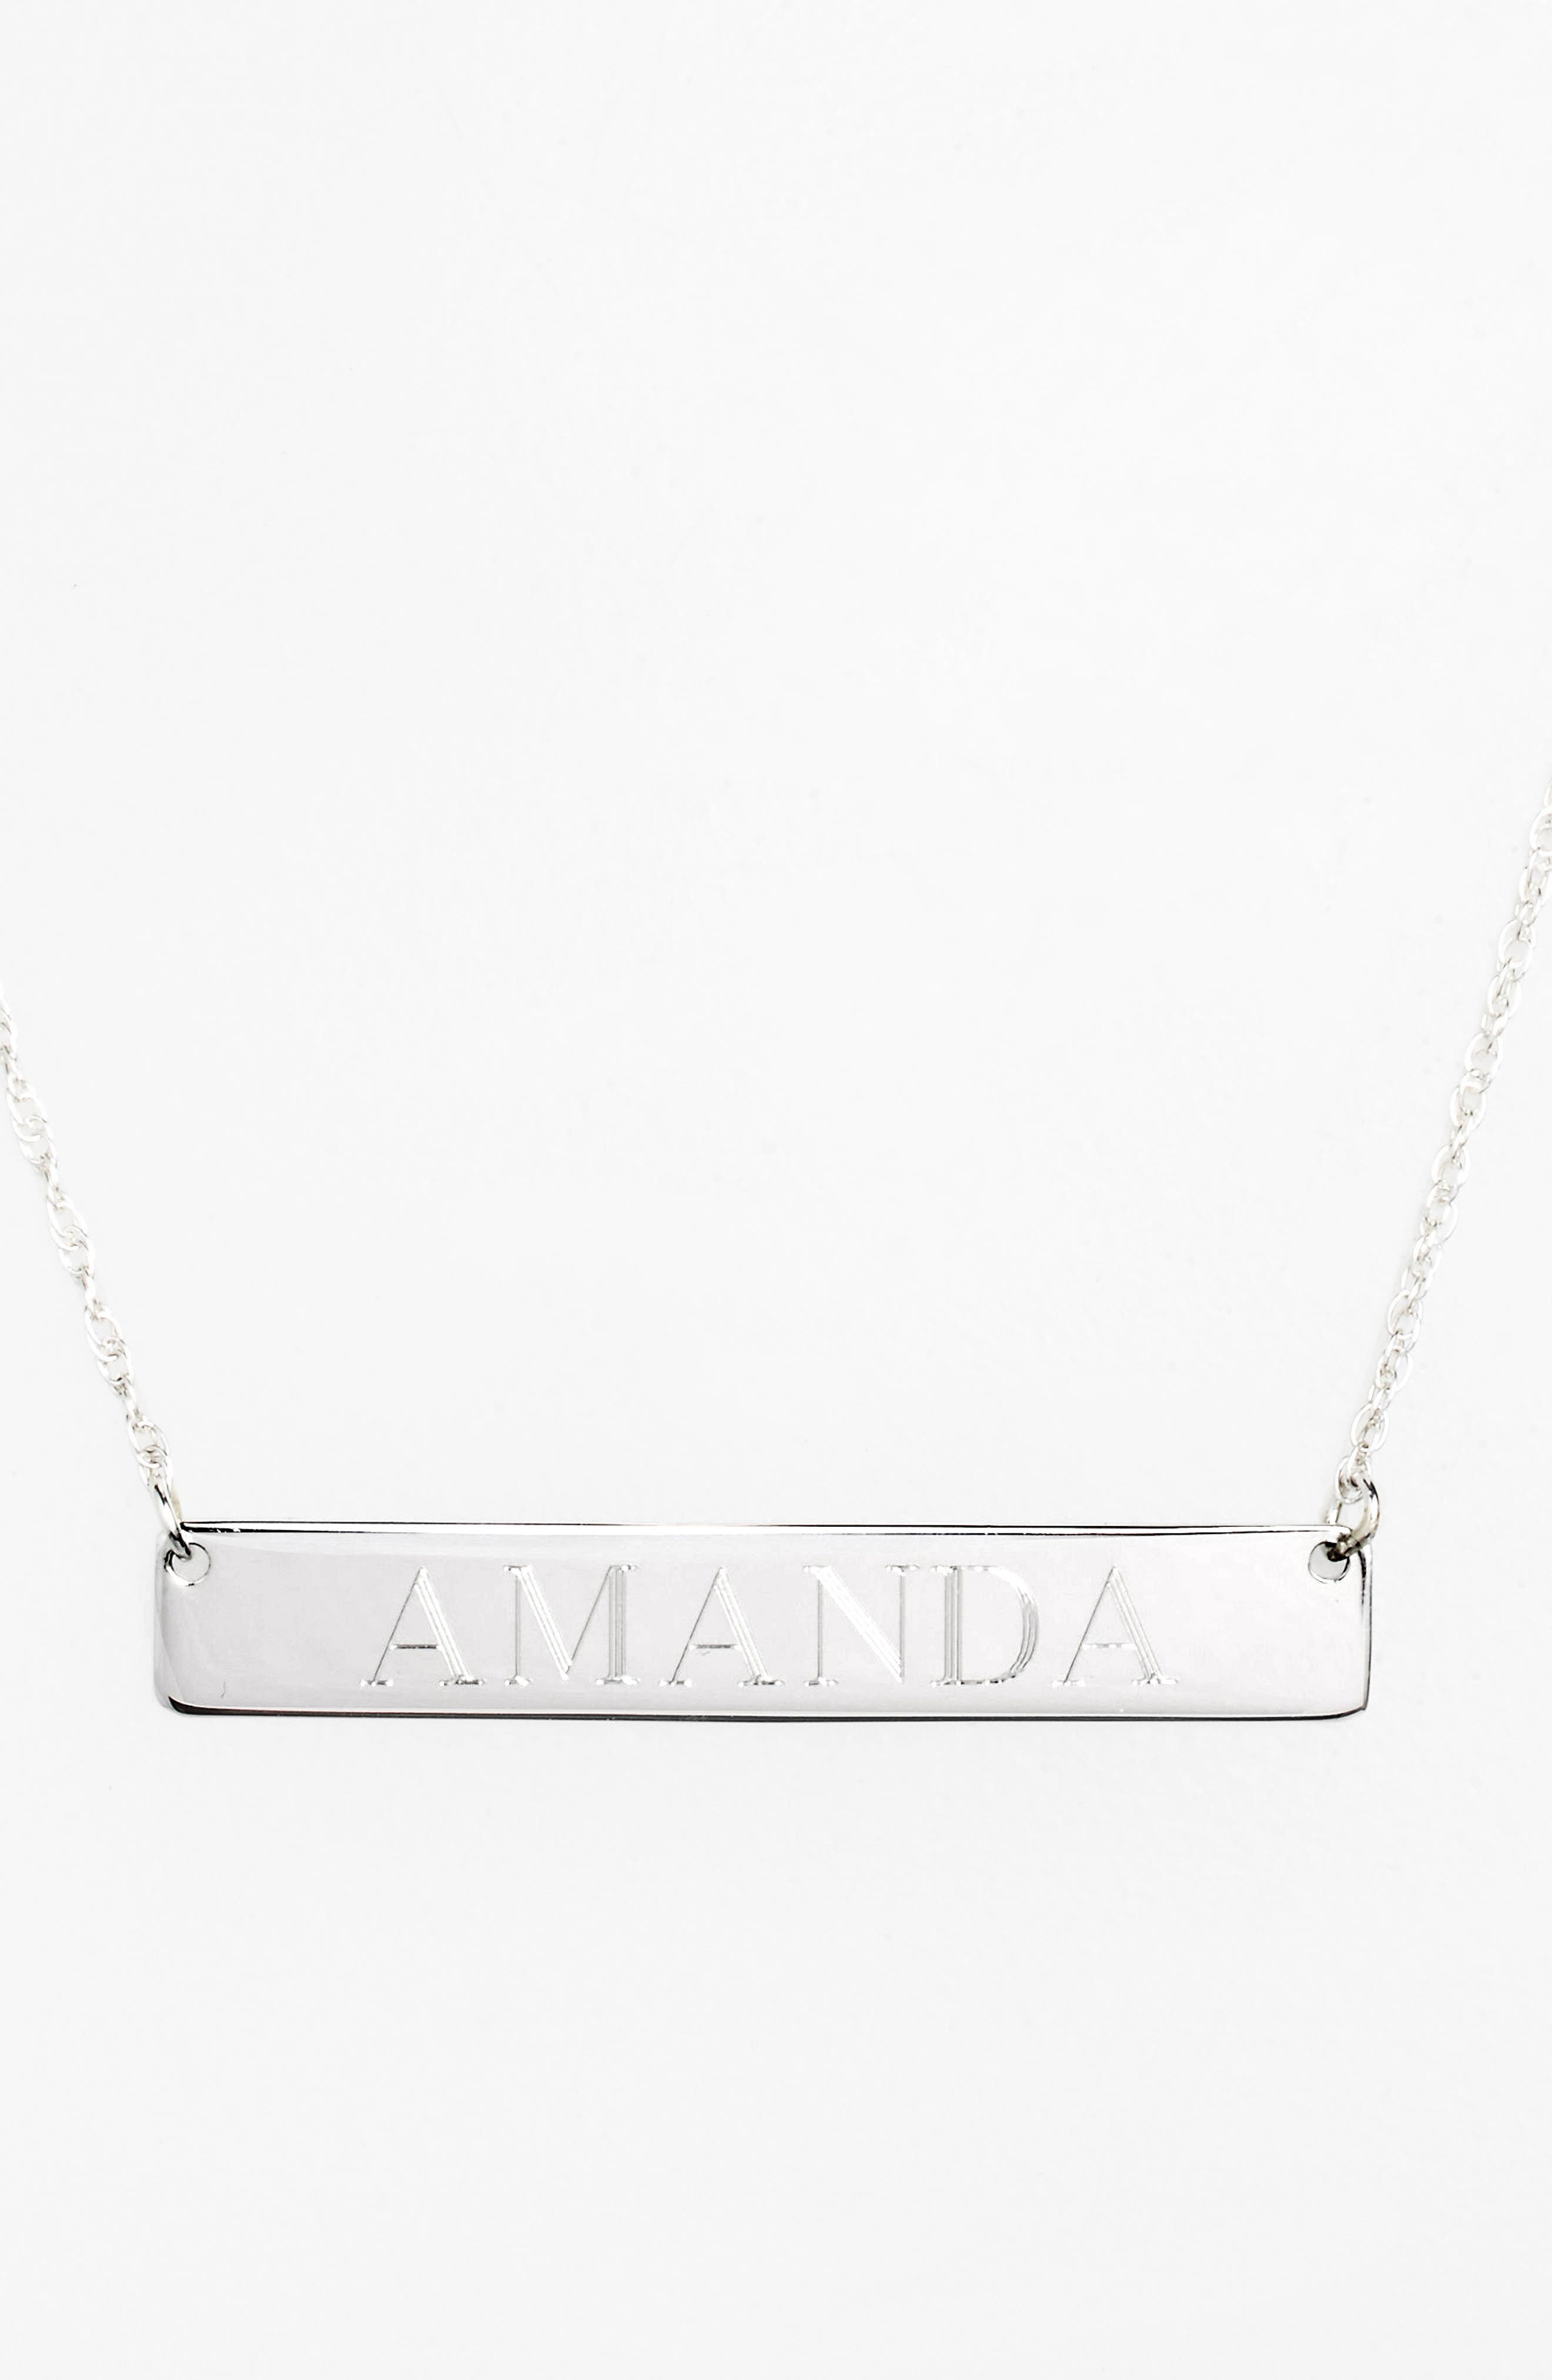 Personalized Bar Pendant Necklace,                             Alternate thumbnail 4, color,                             SILVER